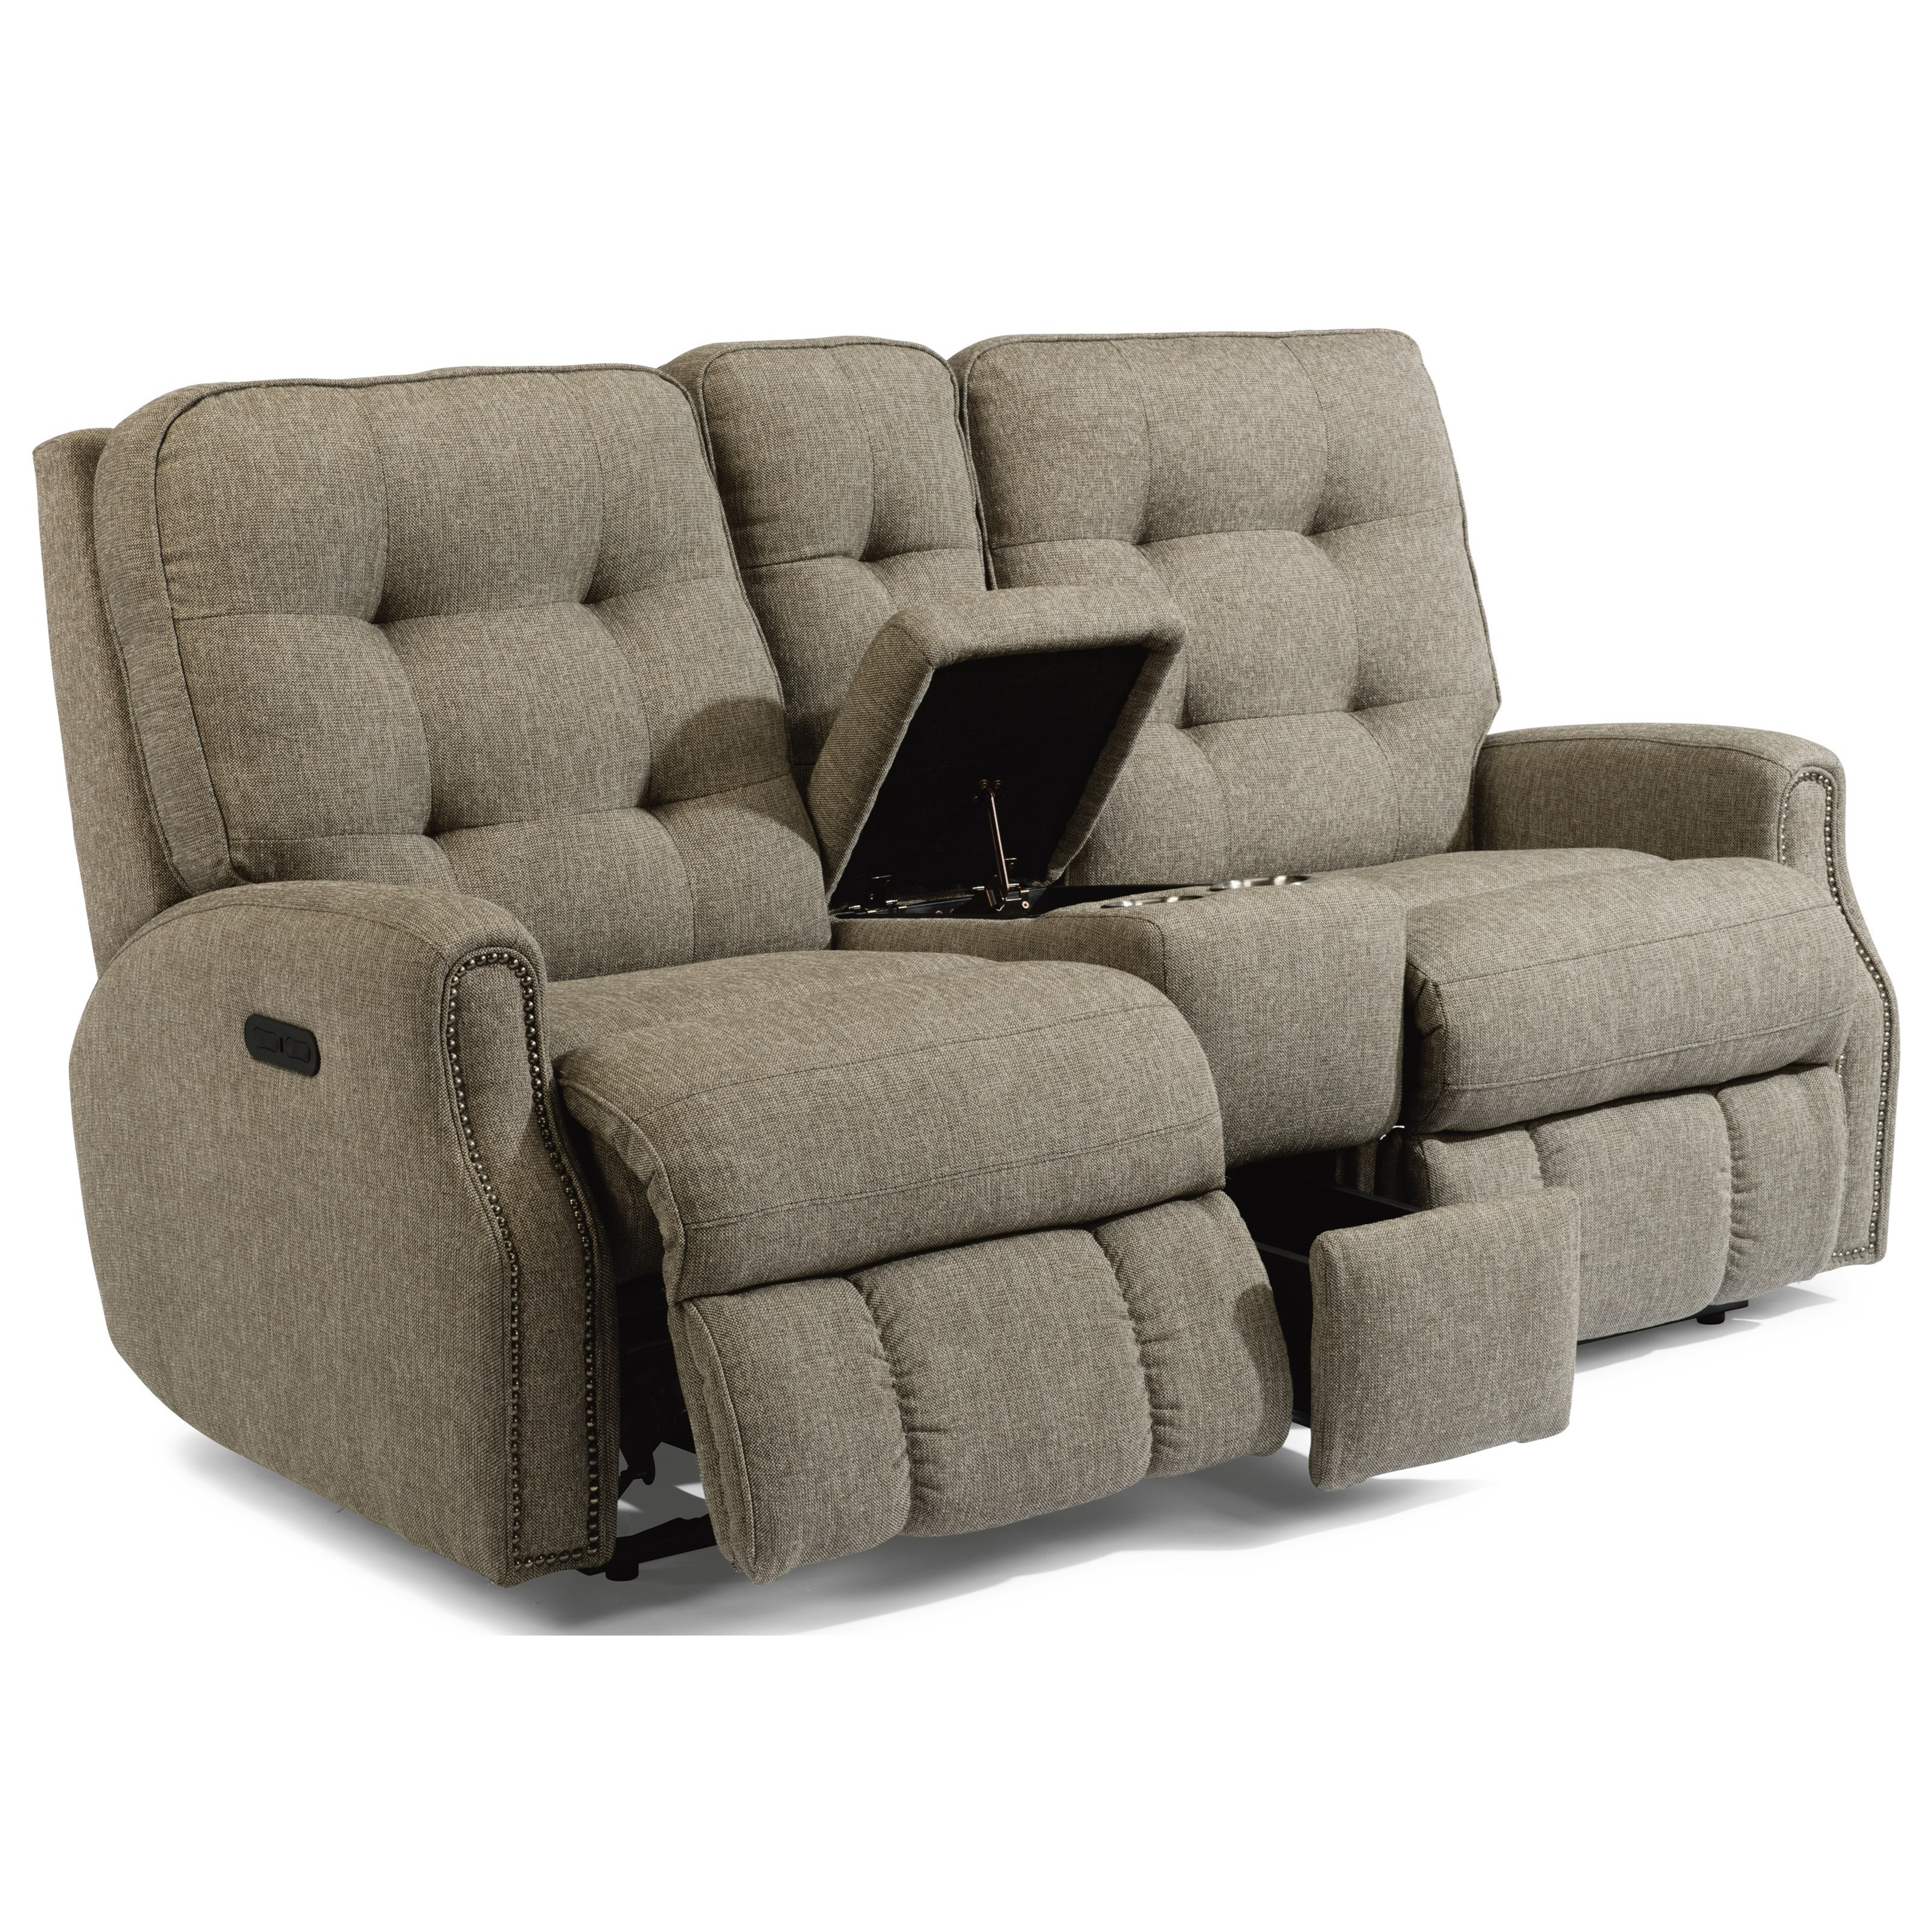 Devon Reclining Loveseat with Console by Flexsteel at Fisher Home Furnishings